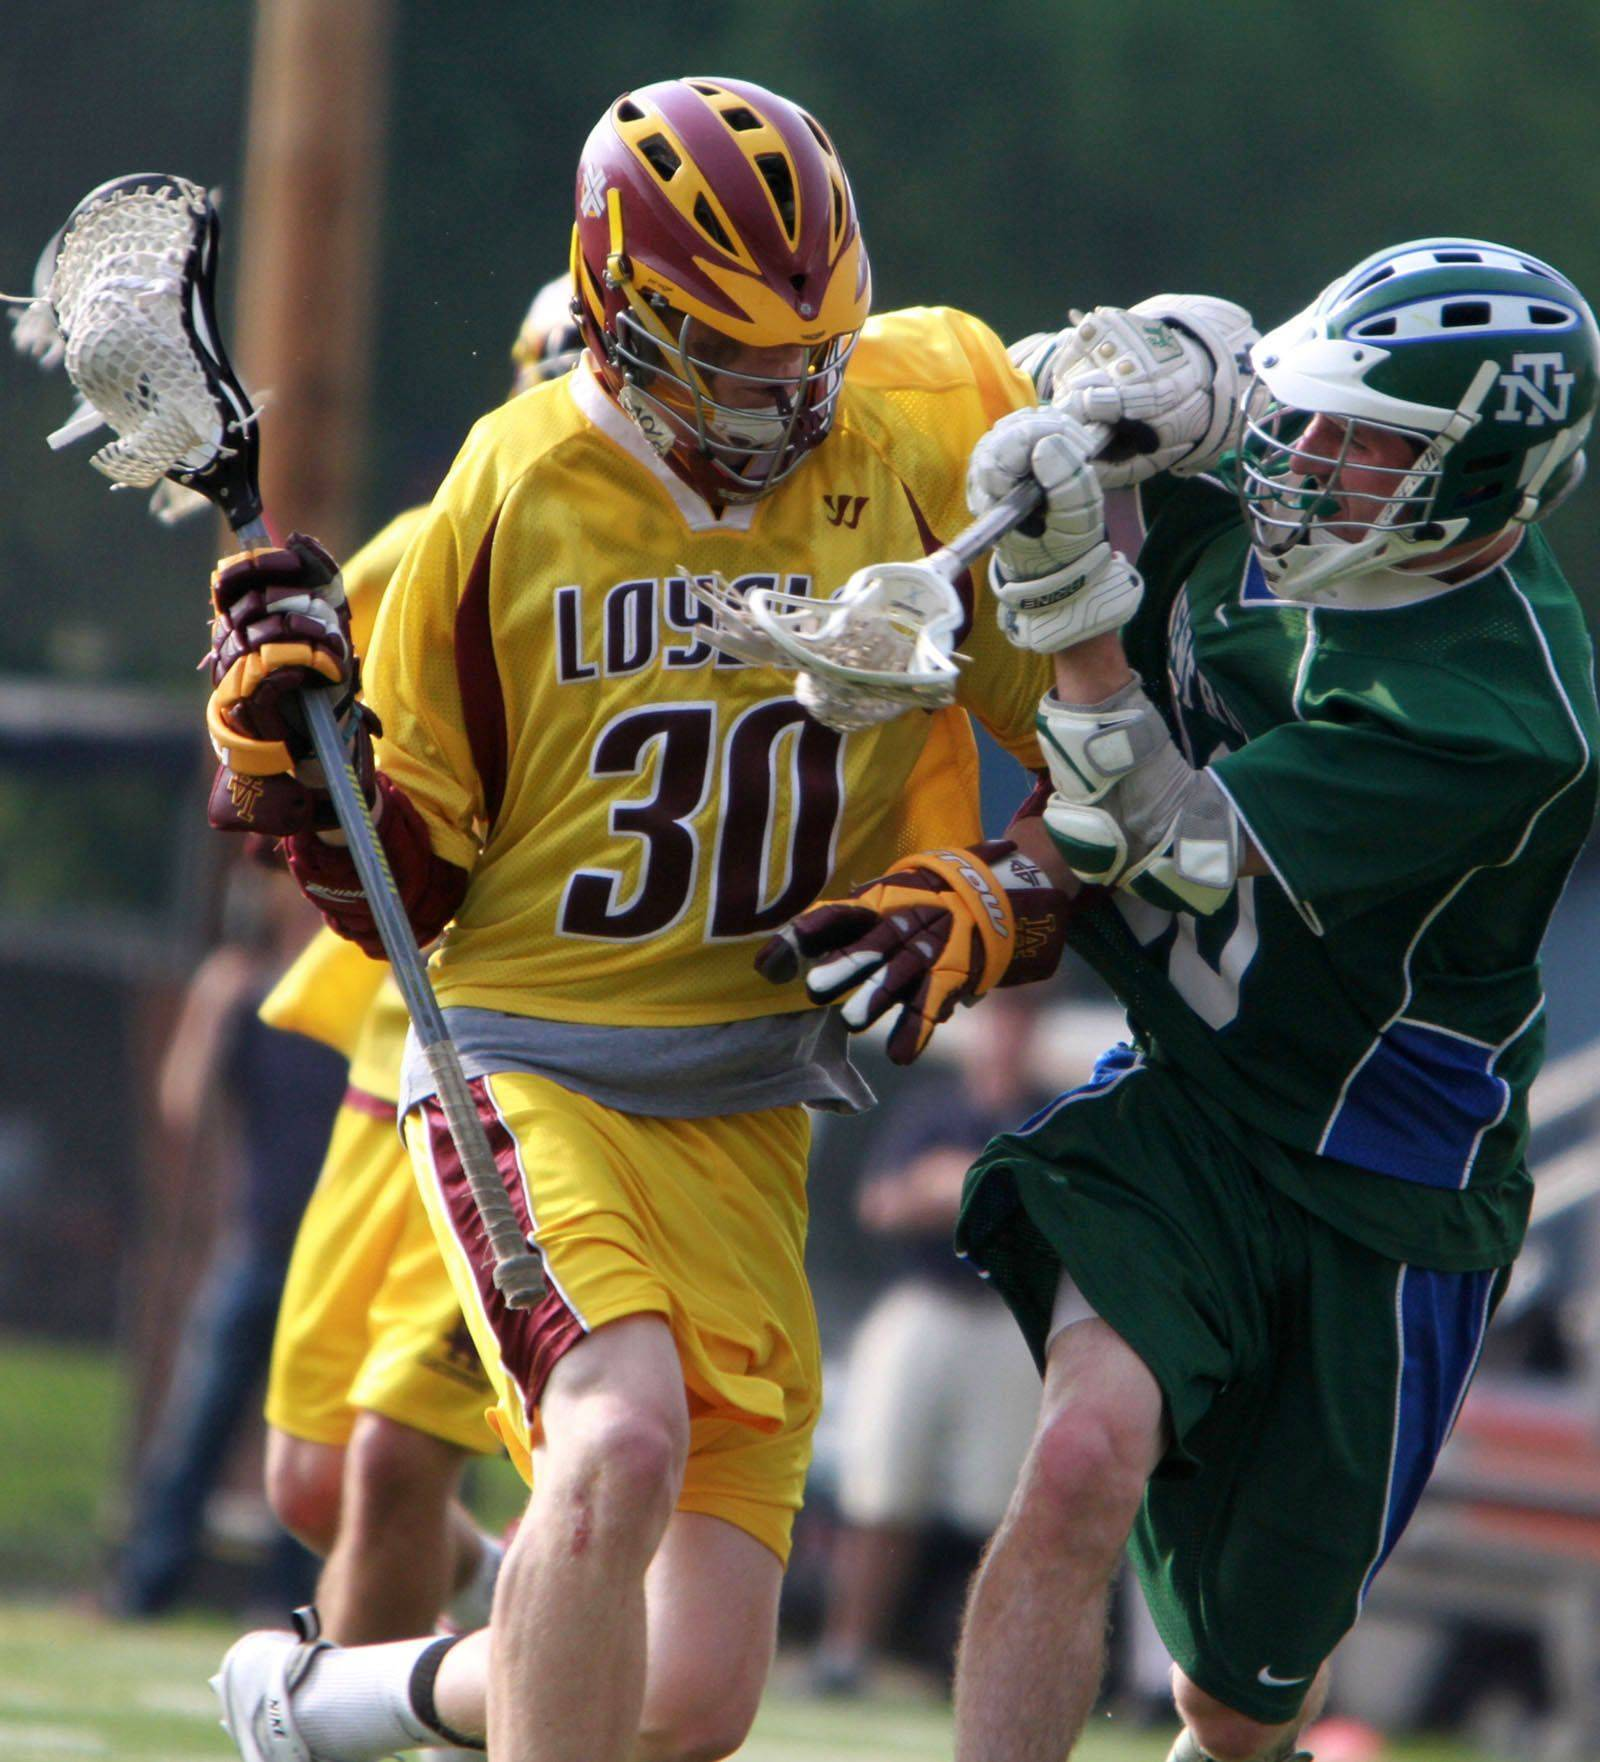 Loyola Academy's Dan O'Malley runs with the ball against New Trier defender Robbie Marren in IHSLA state lacrosse championship game in Oak Park on Saturday.